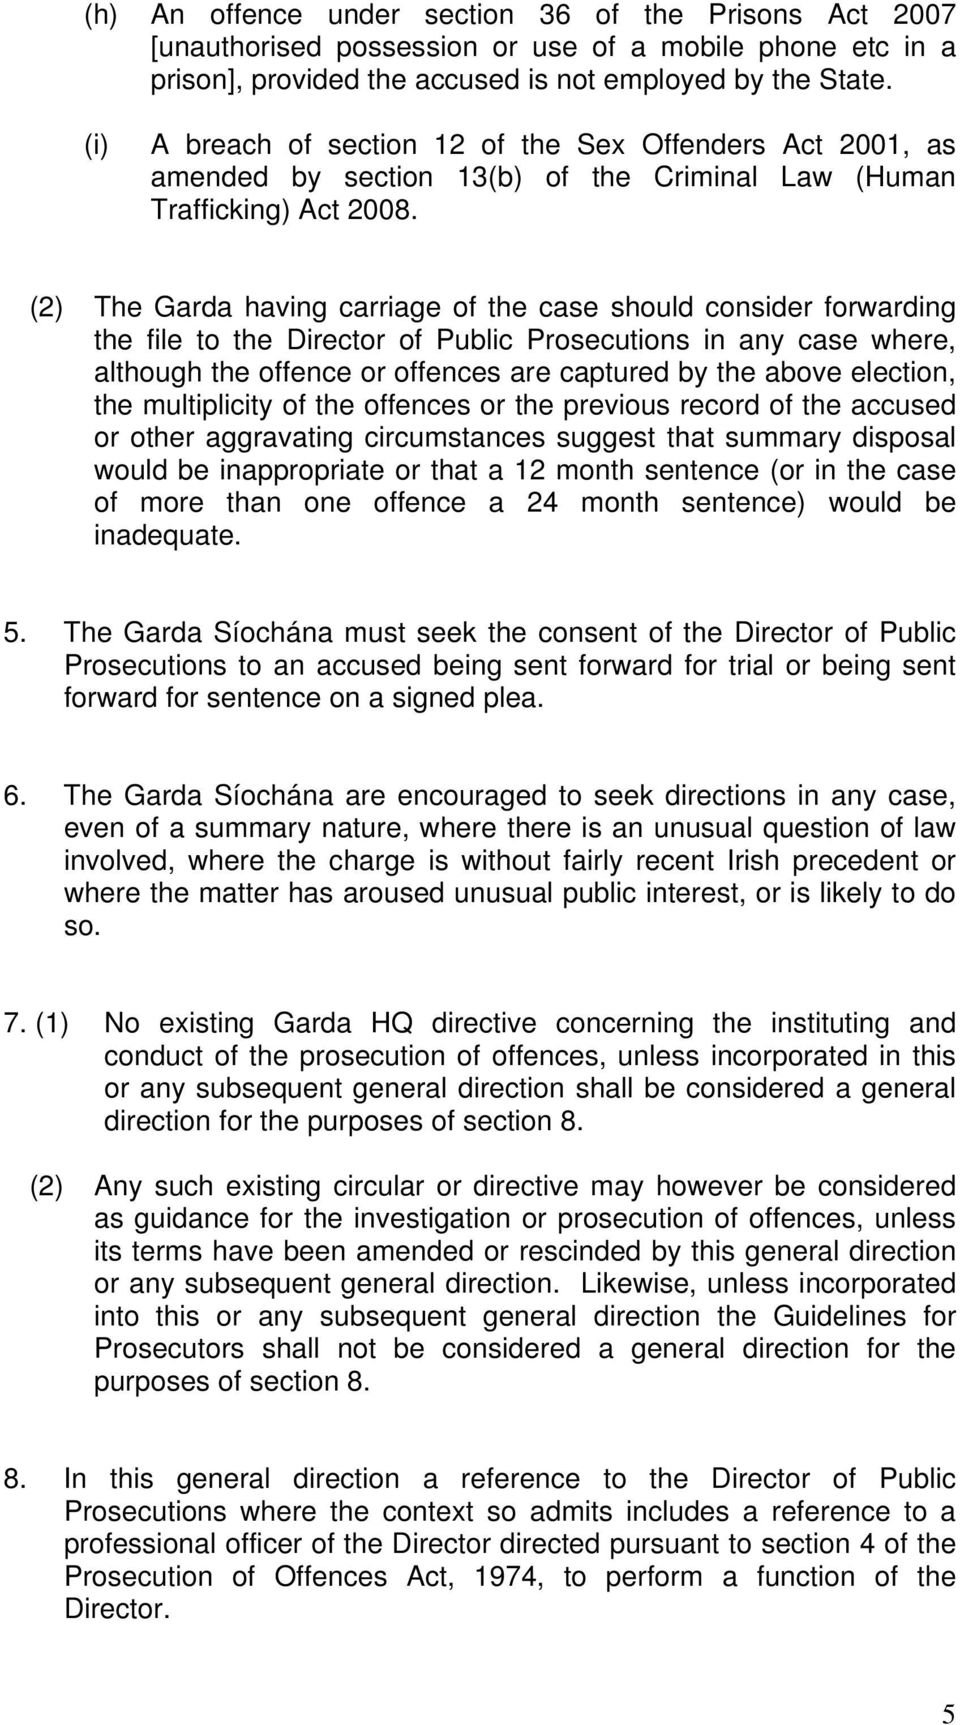 (2) The Garda having carriage of the case should consider forwarding the file to the Director of Public Prosecutions in any case where, although the offence or offences are captured by the above